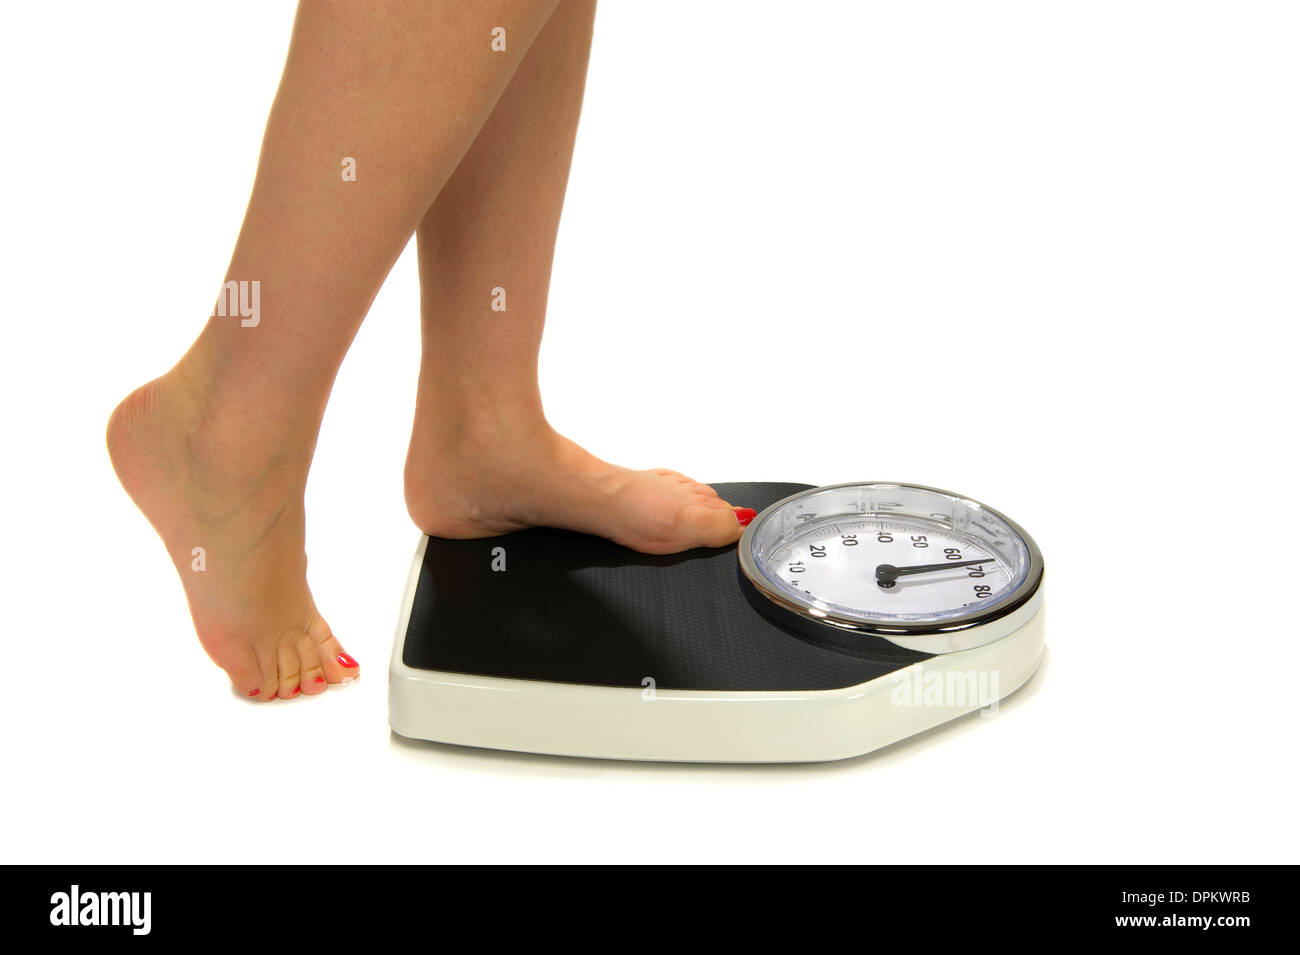 A woman standing on a weight scale - Stock Image